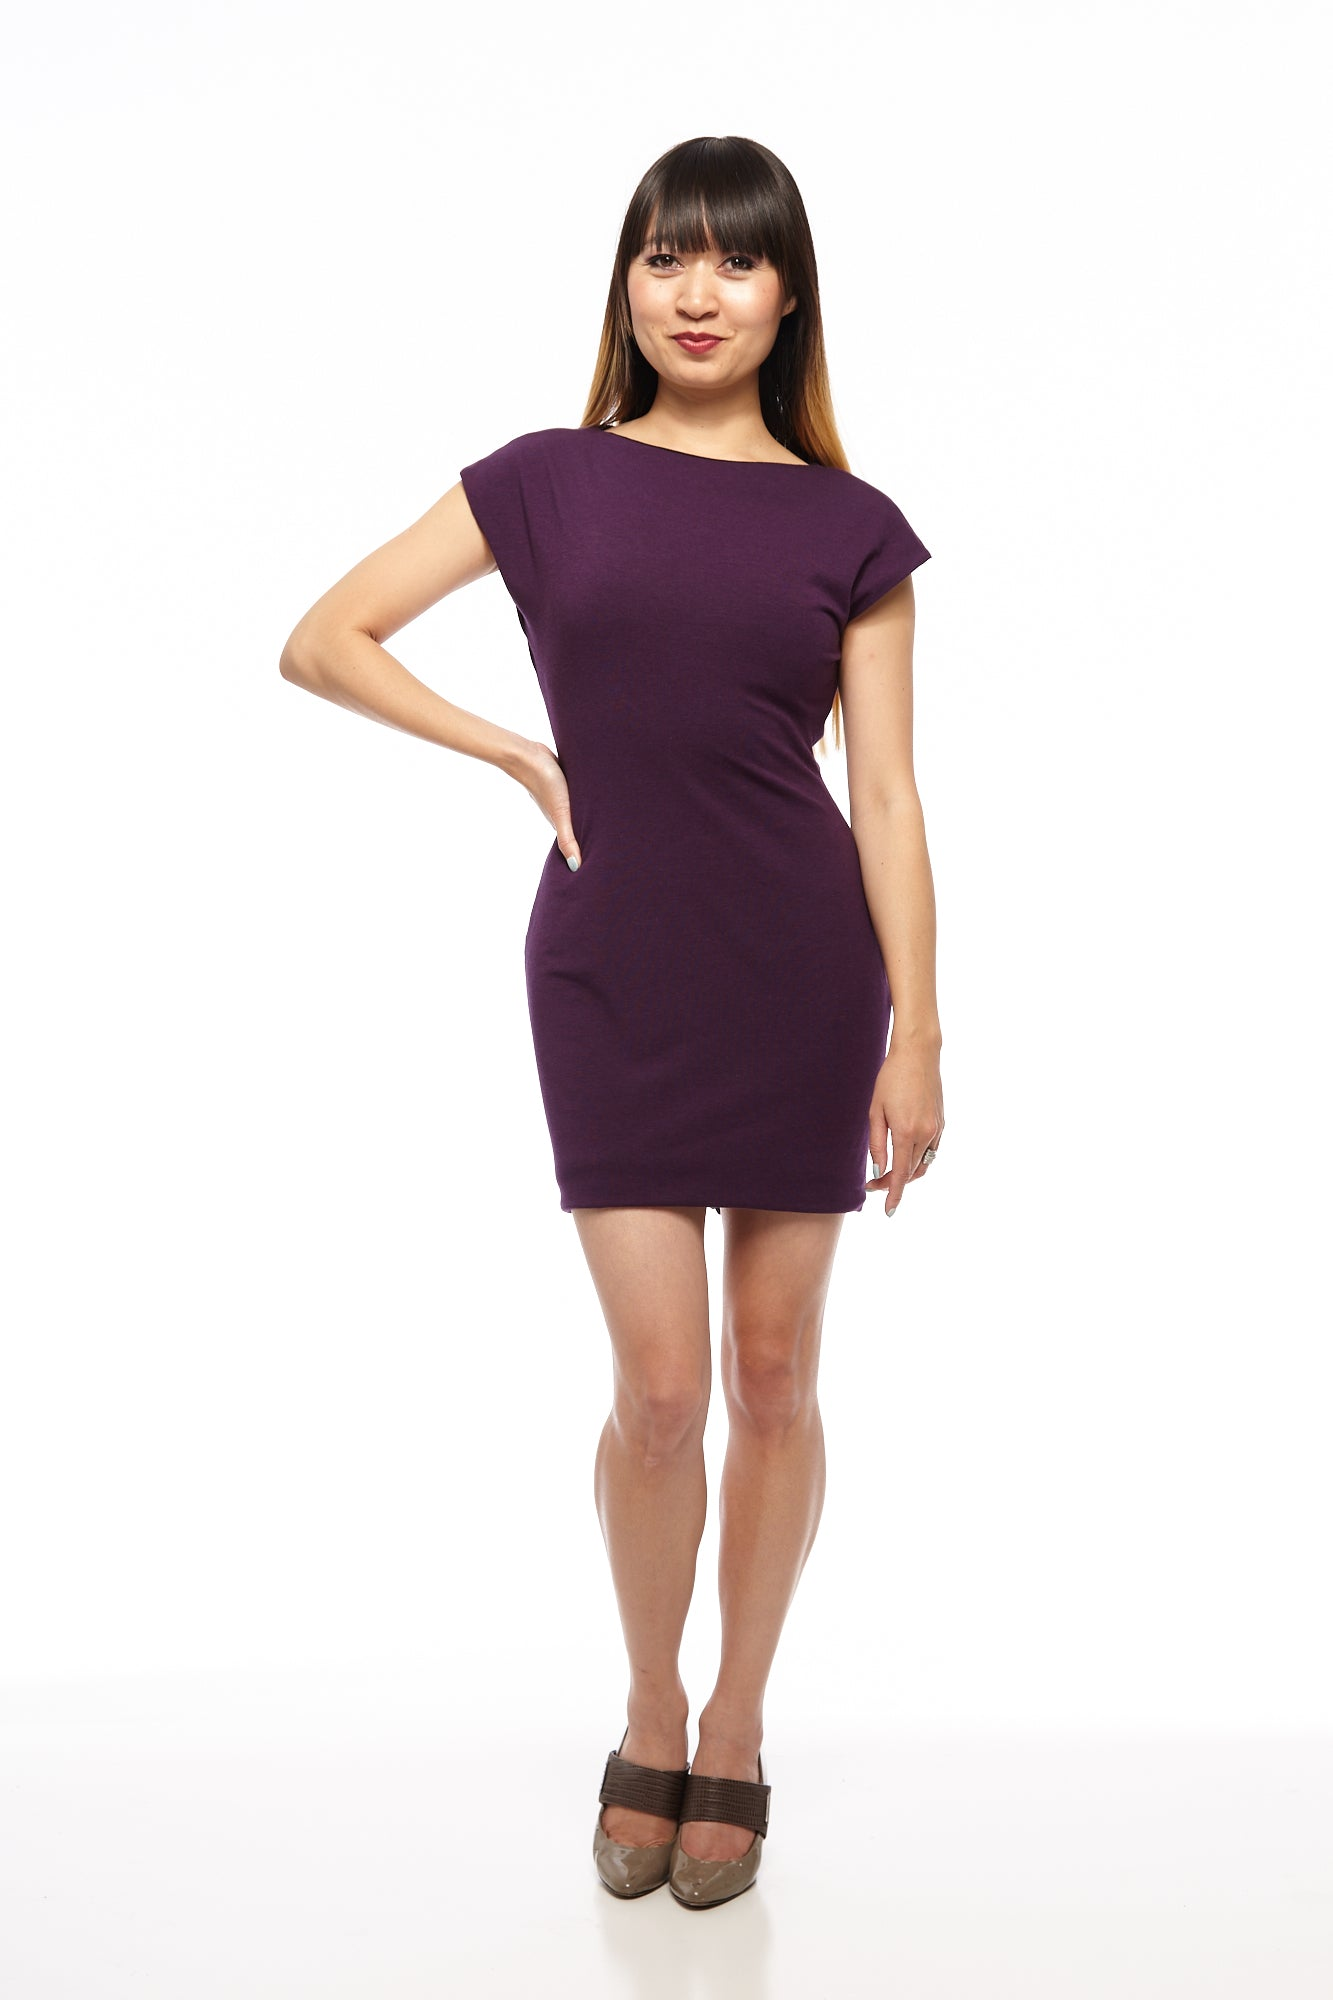 Cap Sleeved Original 2-Way Reversible Dress